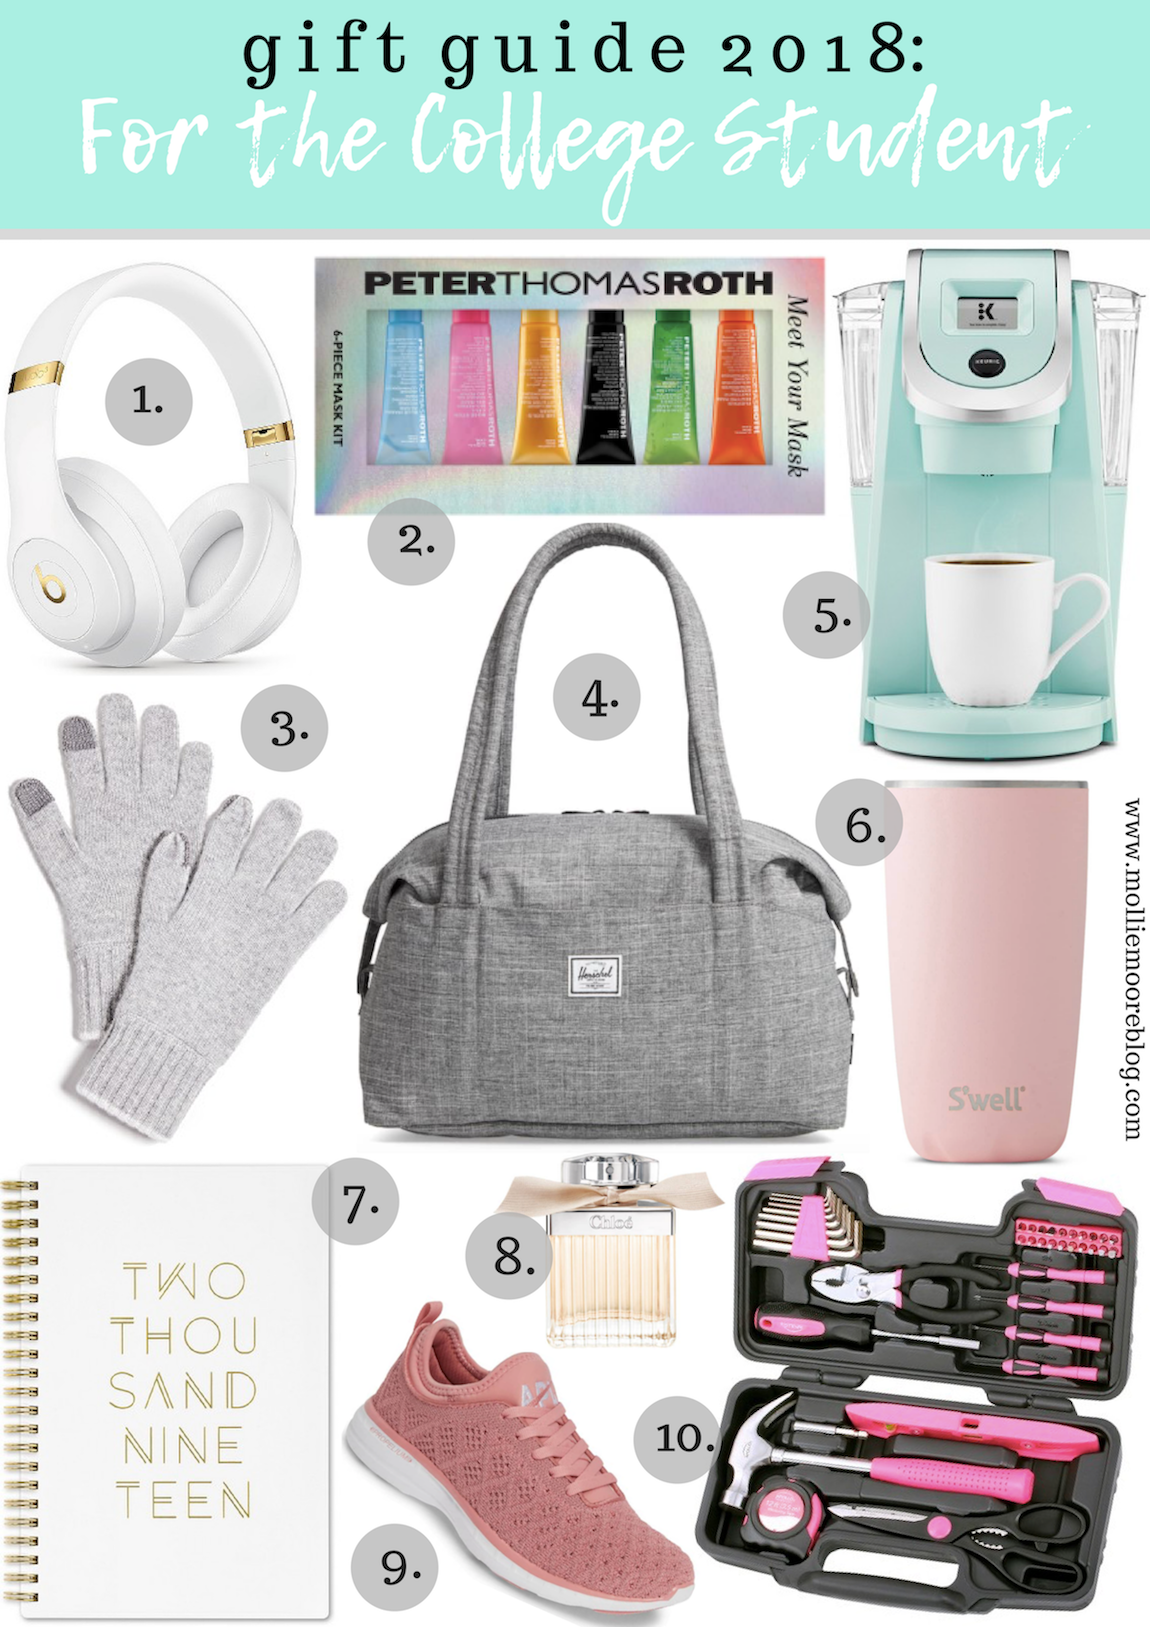 Lifestyle blogger Mollie Moore shares her top 10 gift ideas for college students